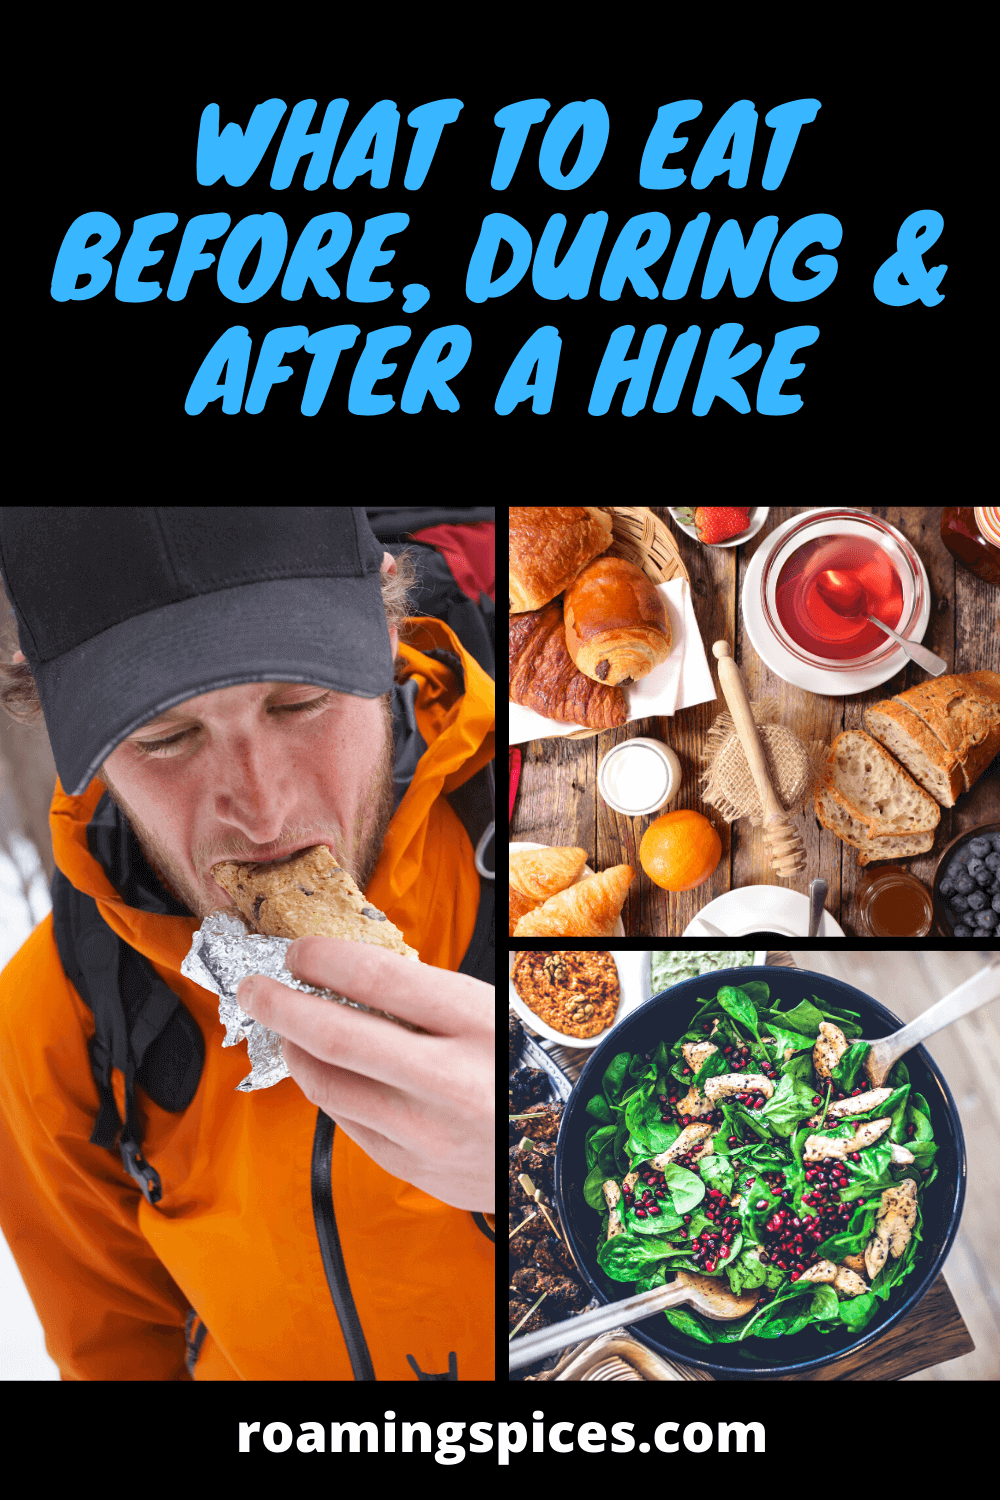 what to eat before, during and after a hike